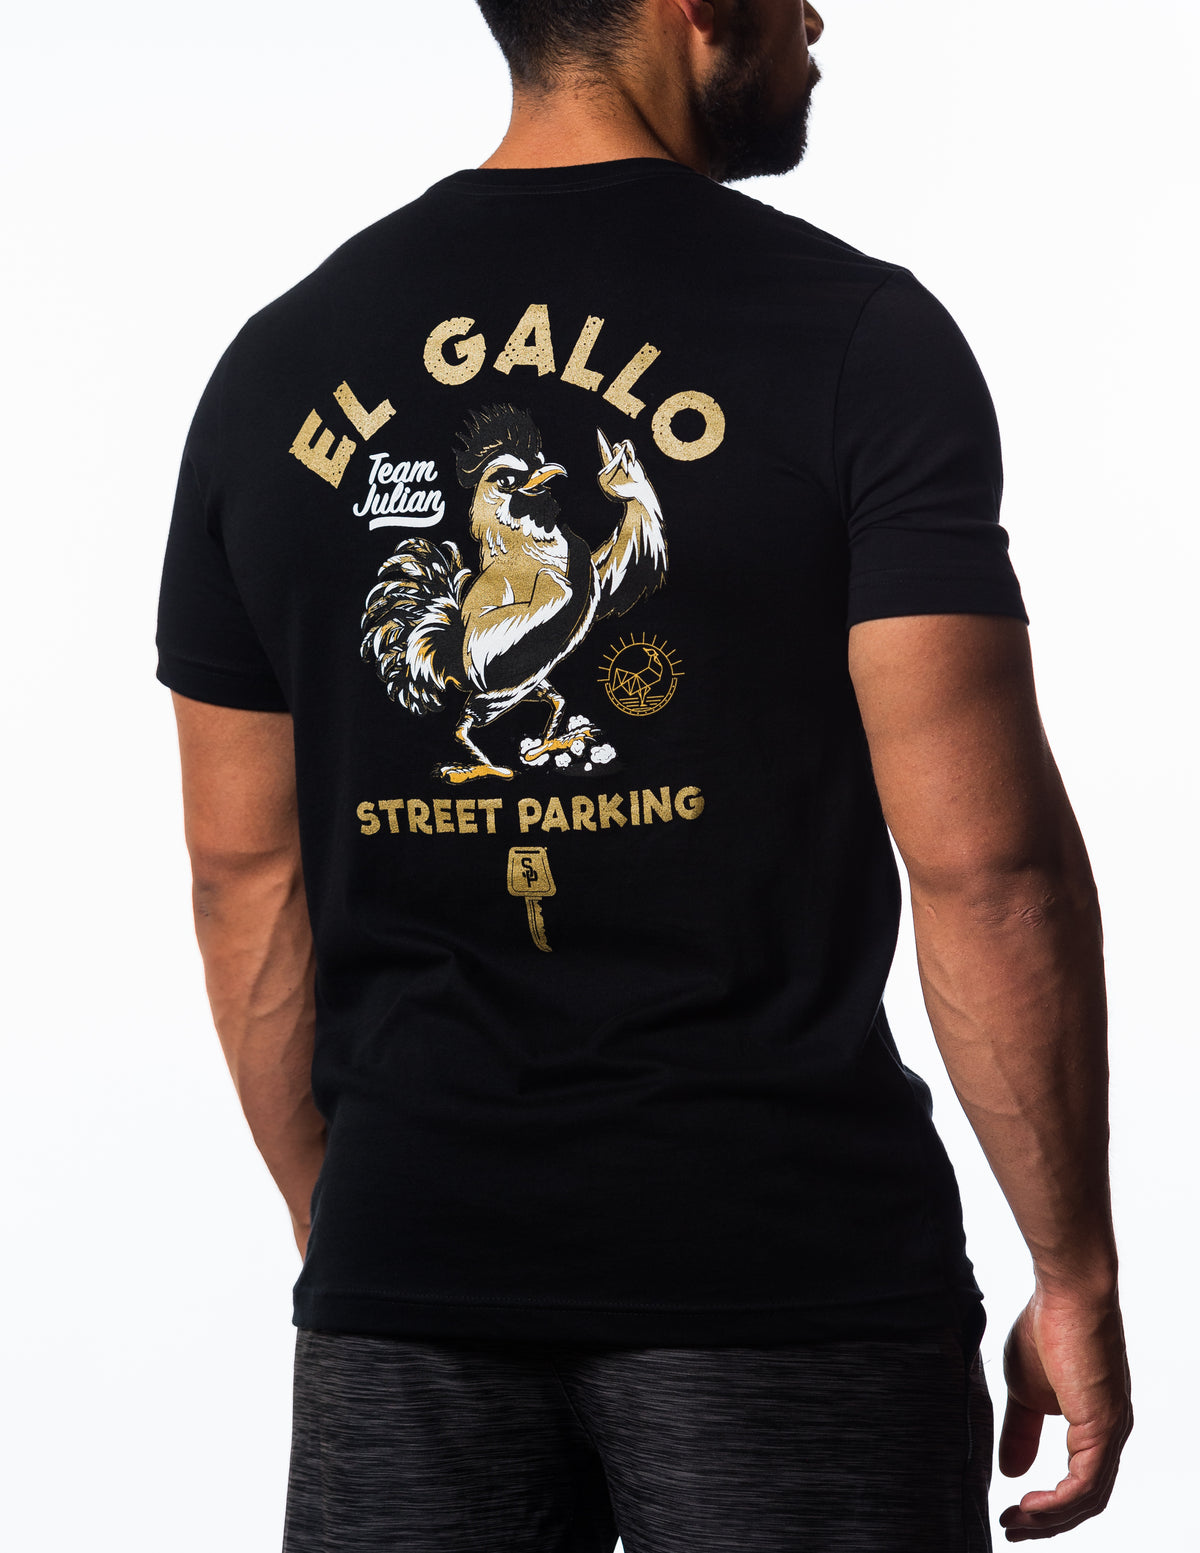 2020 Team Gallo Tank - Street Parking